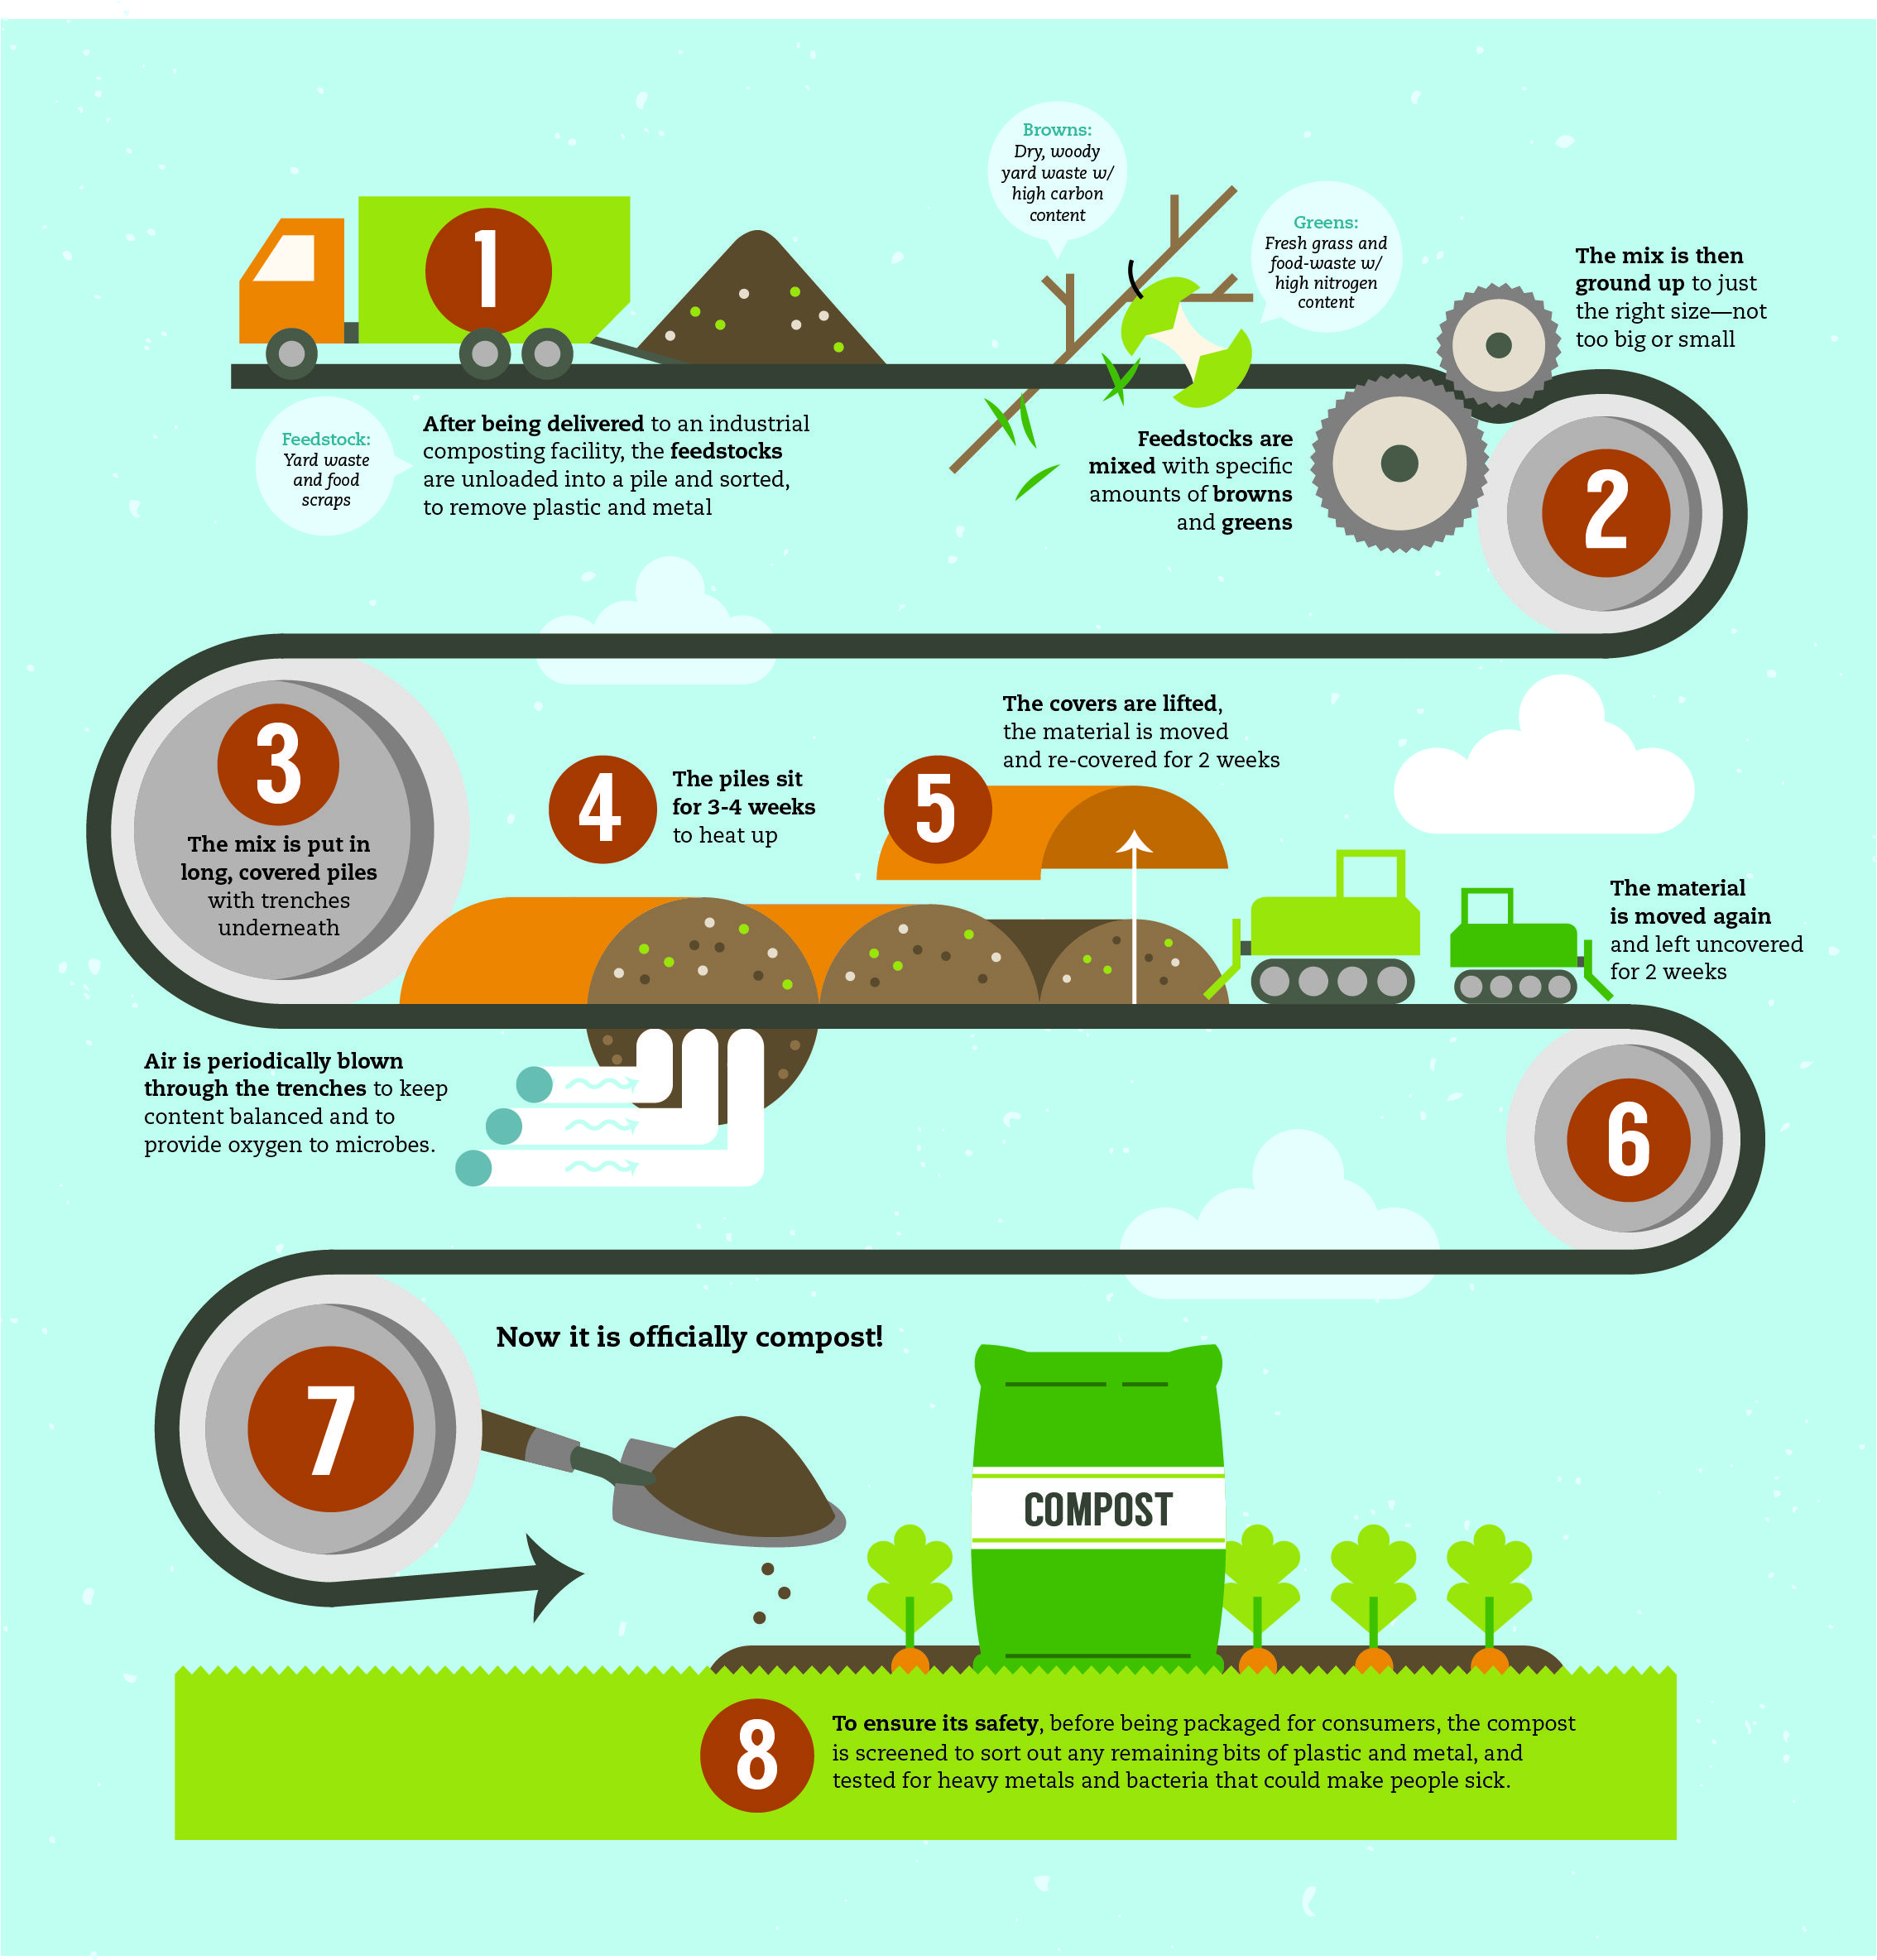 Composting 101 What Is Compost: Composting 101 - Facts On Composting